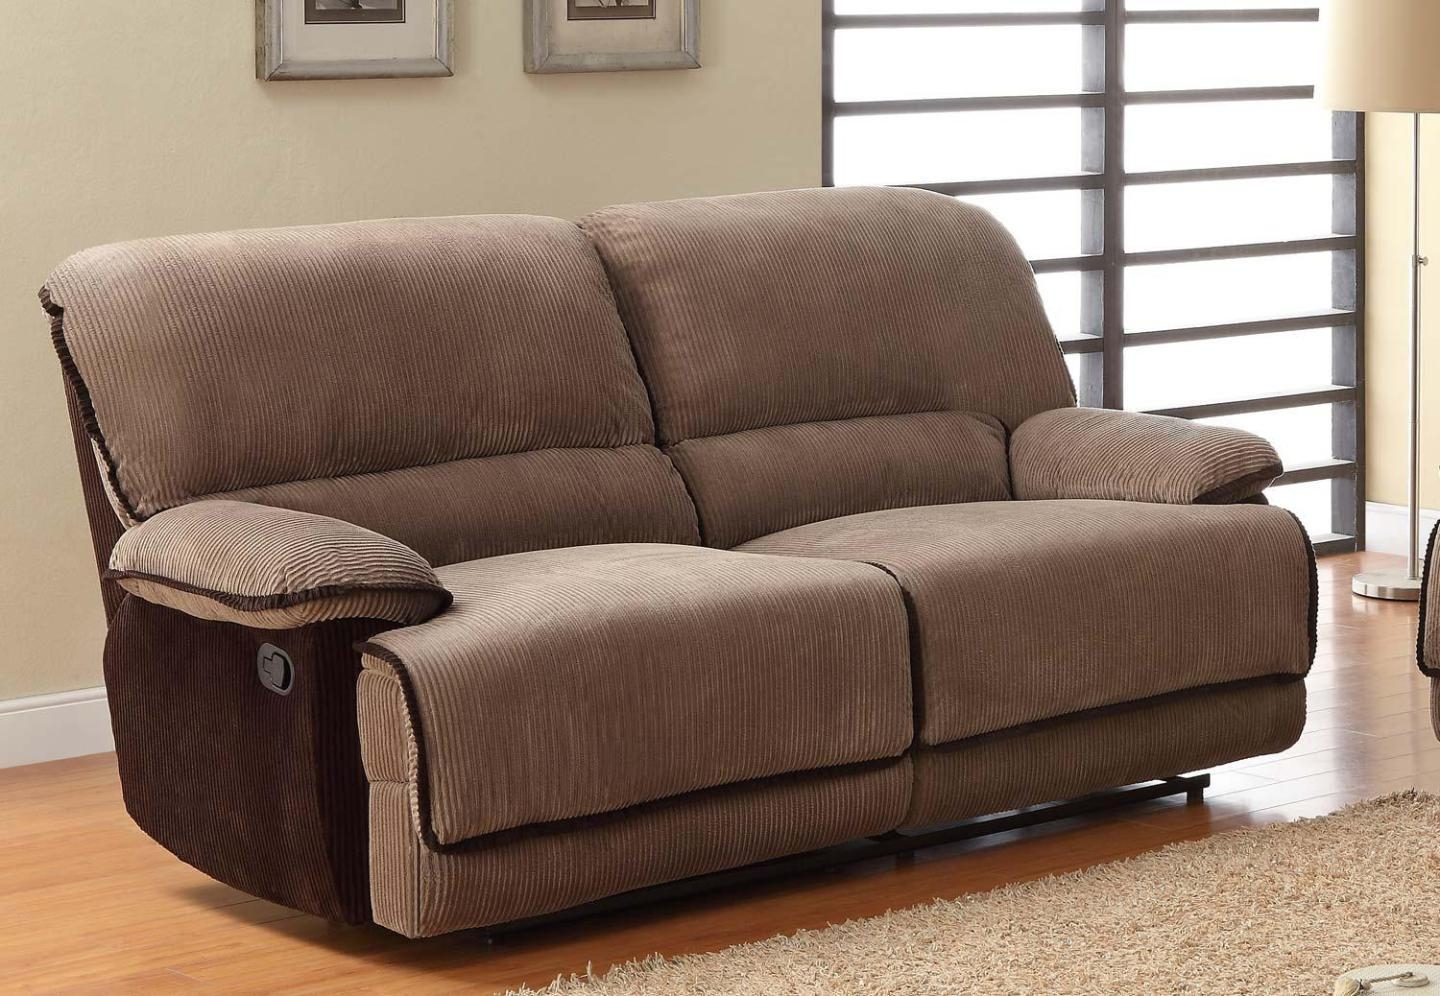 highest rated slipcovered sofas liquidation ireland 20 top slipcover for reclining sofa ideas